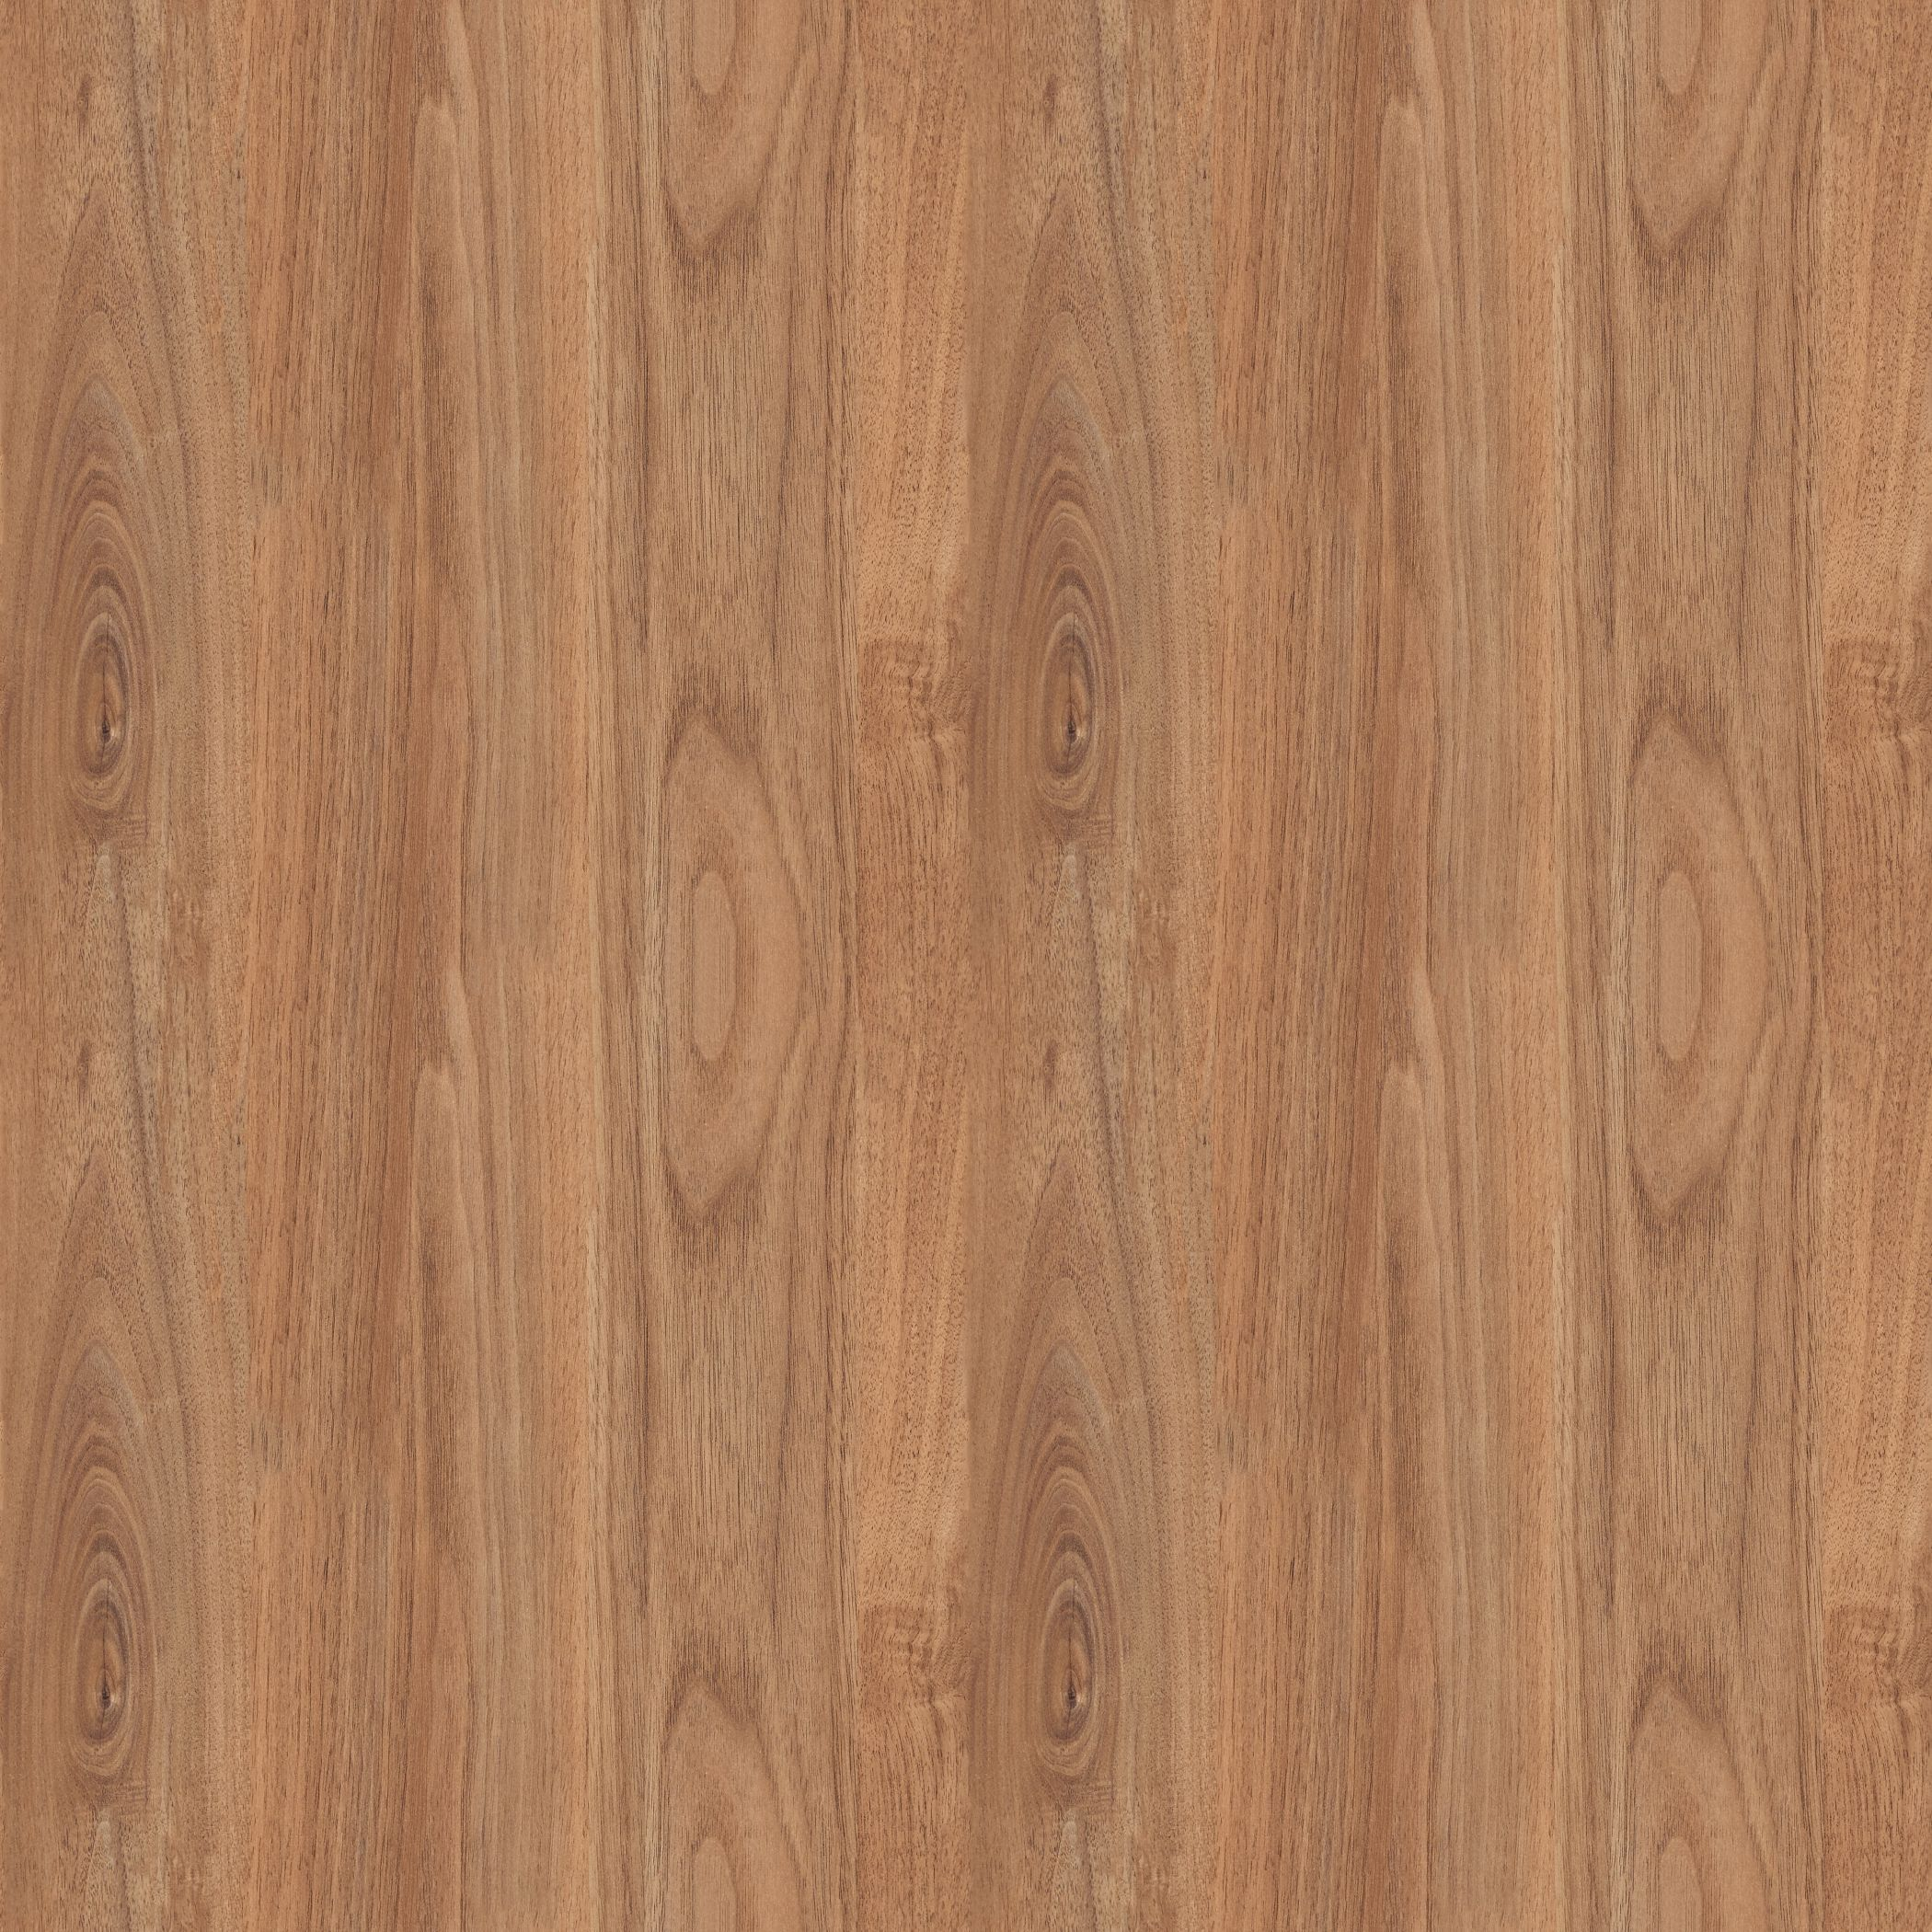 Surfaceset 2016 Raw Palette 6401 Natural Walnut Taking A Cue